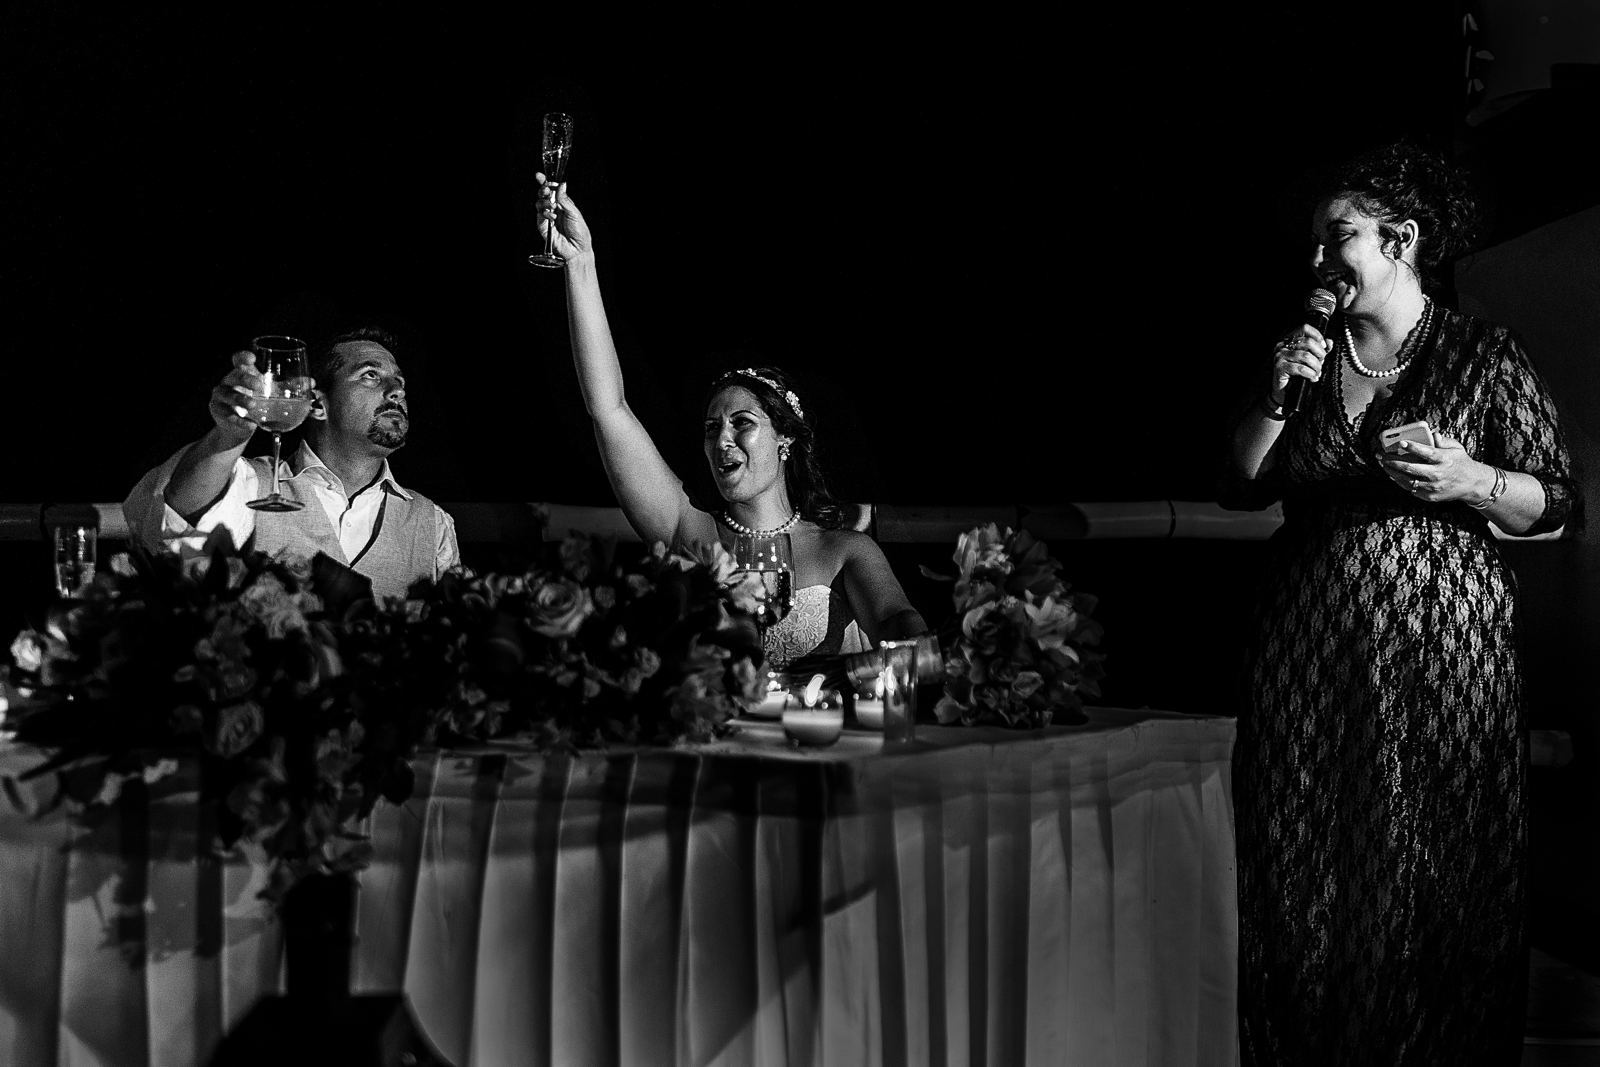 Maid of honor giving a speech, groom and bride raising their champagne glasses